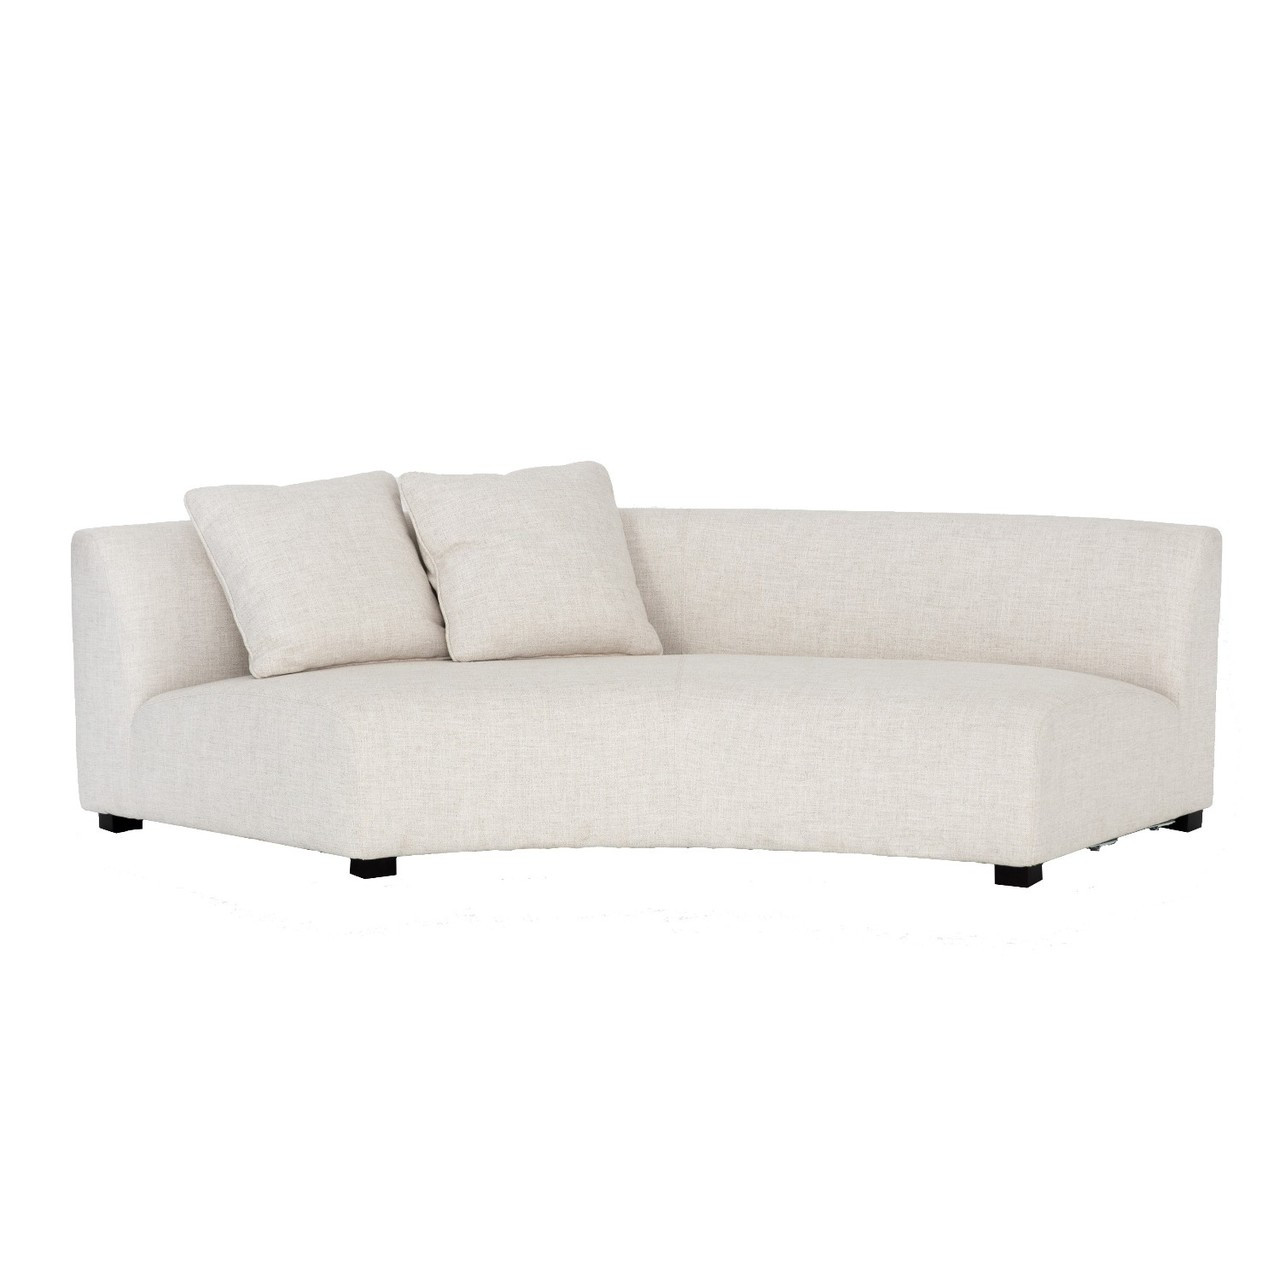 Curved Sofa Liam Modern Cream Curved Sofa 106